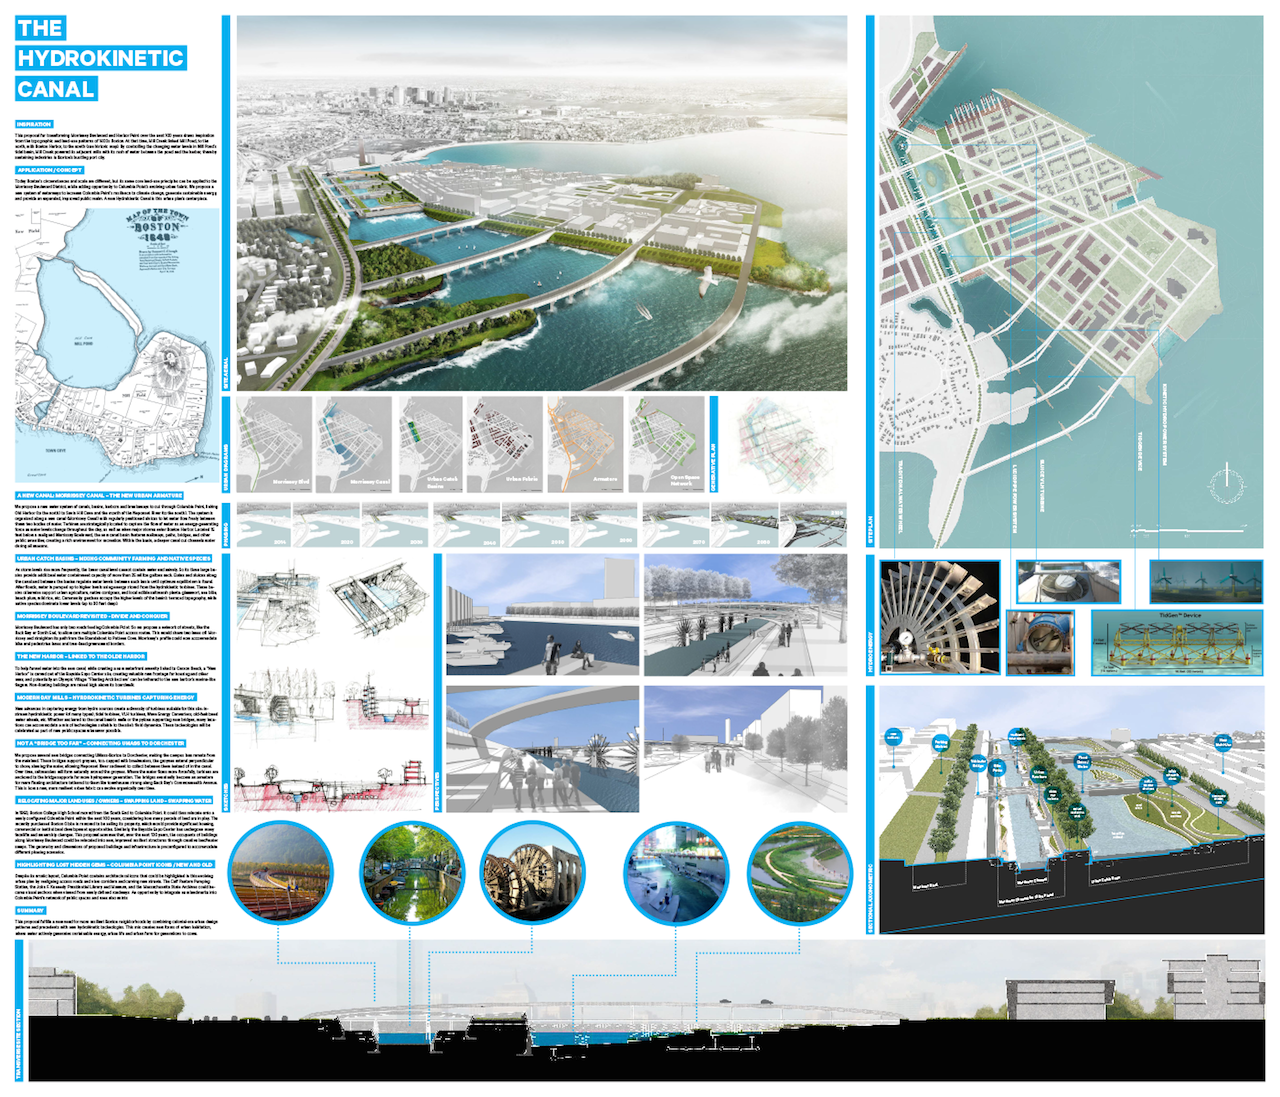 """""""The Hydrokinetic Canal"""" led by Paul Lukez Architecture - This proposal for transforming Morrissey Boulevard and Harbor Point over the next 100 years draws inspiration from the topographic and land-use patterns of 17th century Boston. A new system of waterways would be created to increase Columbia Point's resilience to climate change, generate sustainable energy, and provide an expanded, improved public realm. A new Hydrokinetic Canal is this urban plan's centerpiece."""